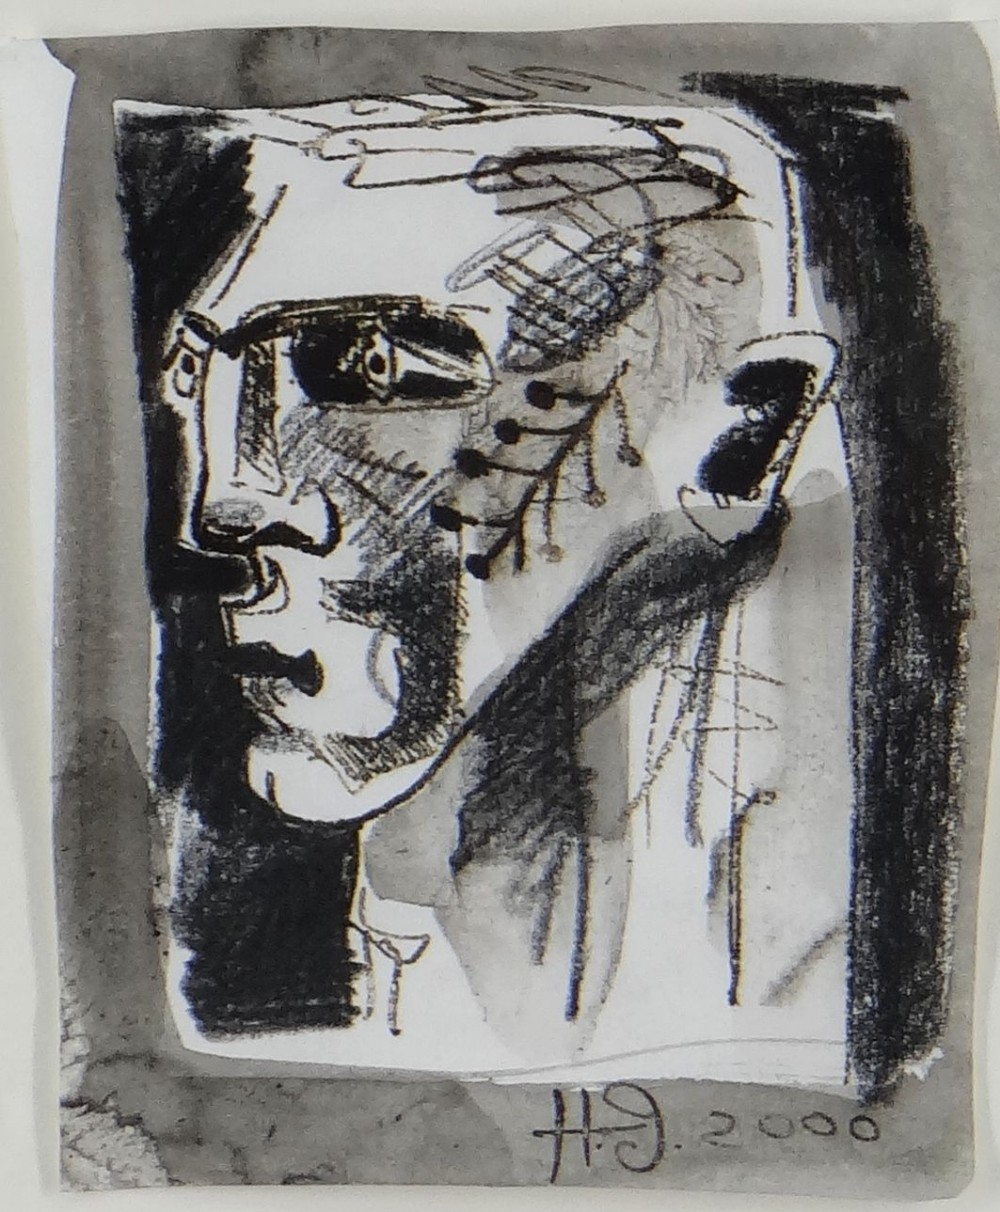 CLIVE HICKS-JENKINS monoprint - entitled verso 'Unmasked Mari Lwyd 2001', signed and dated 2000, 14